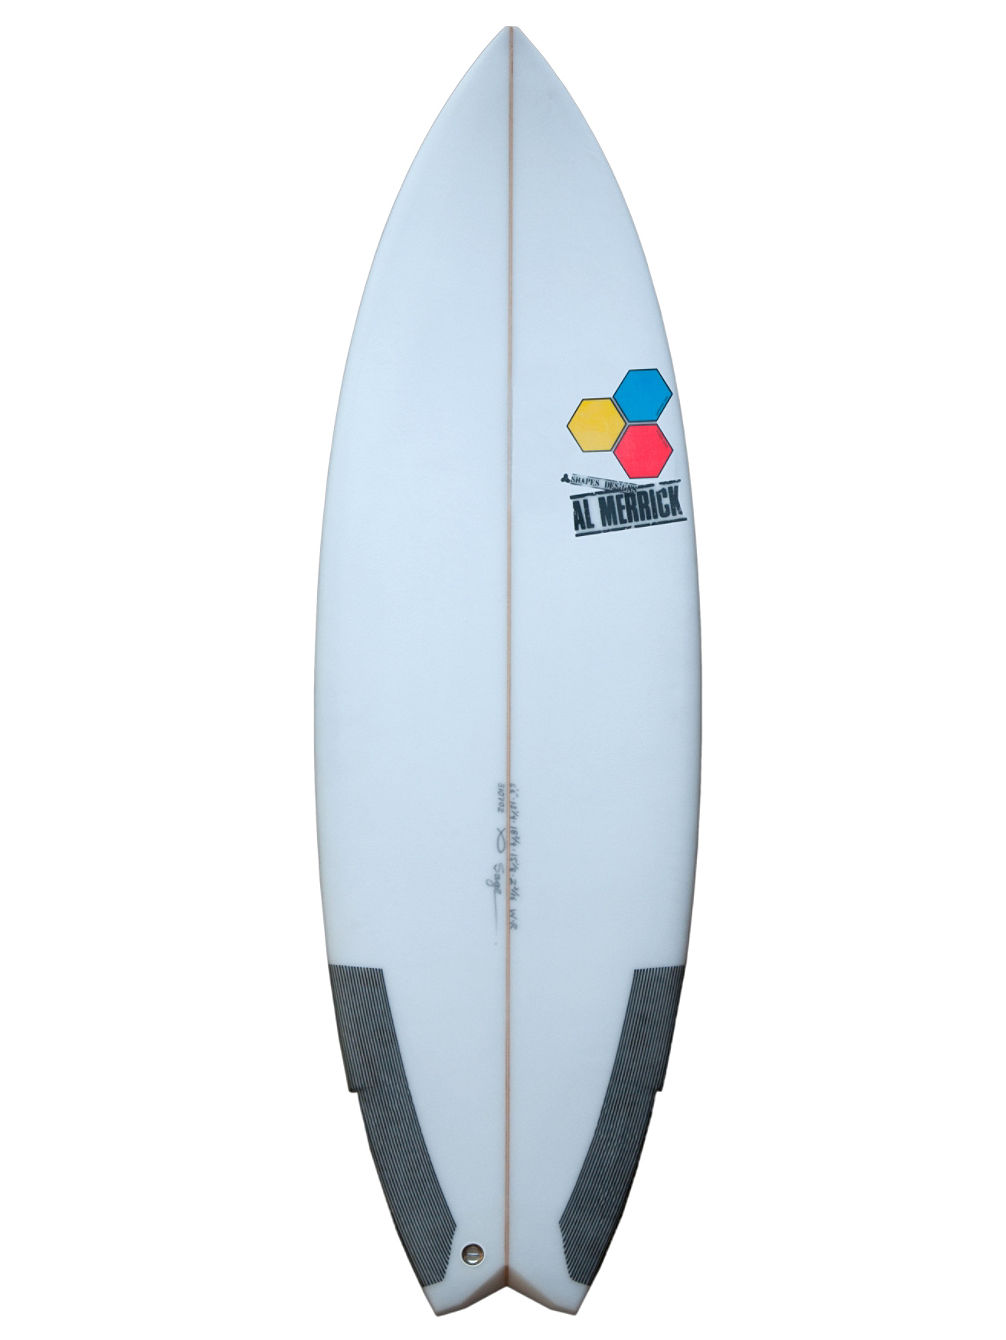 WeirdoRipper 5'6 Surfboard